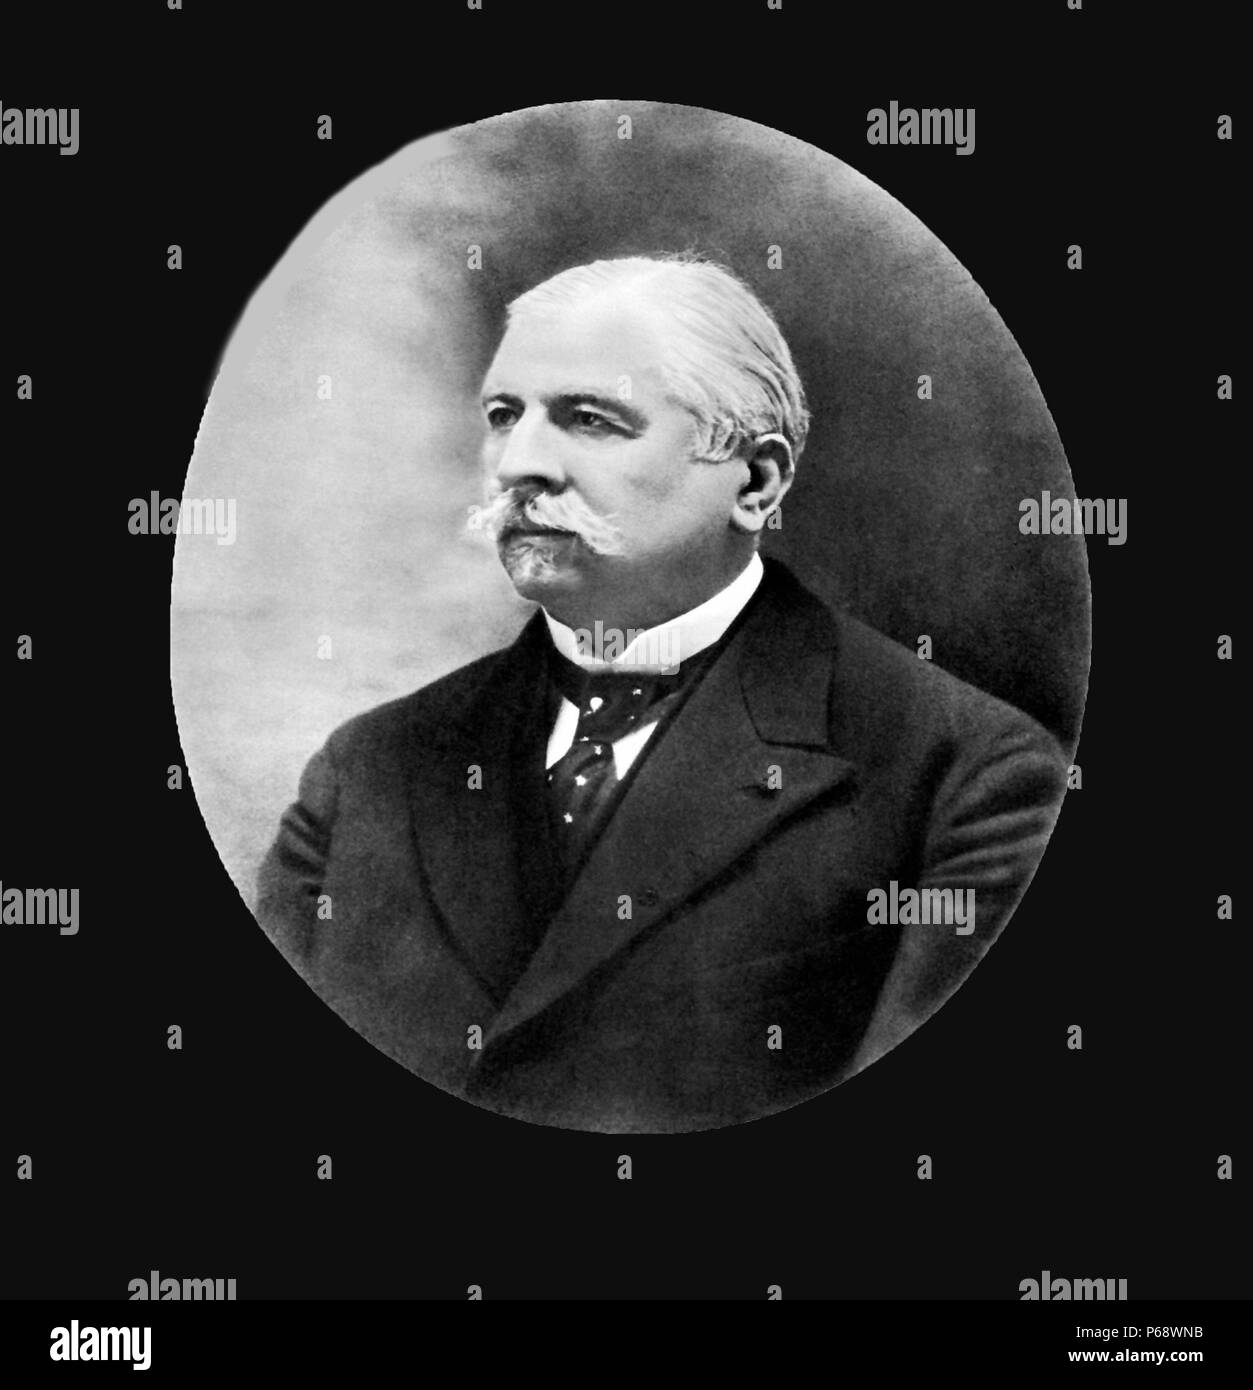 Joseph Babinski (1857 – 1932) French neurologist of Polish descent. He is best known for his 1896 description of the Babinski sign, a pathological plantar reflex indicative of corticospinal tract damage. - Stock Image